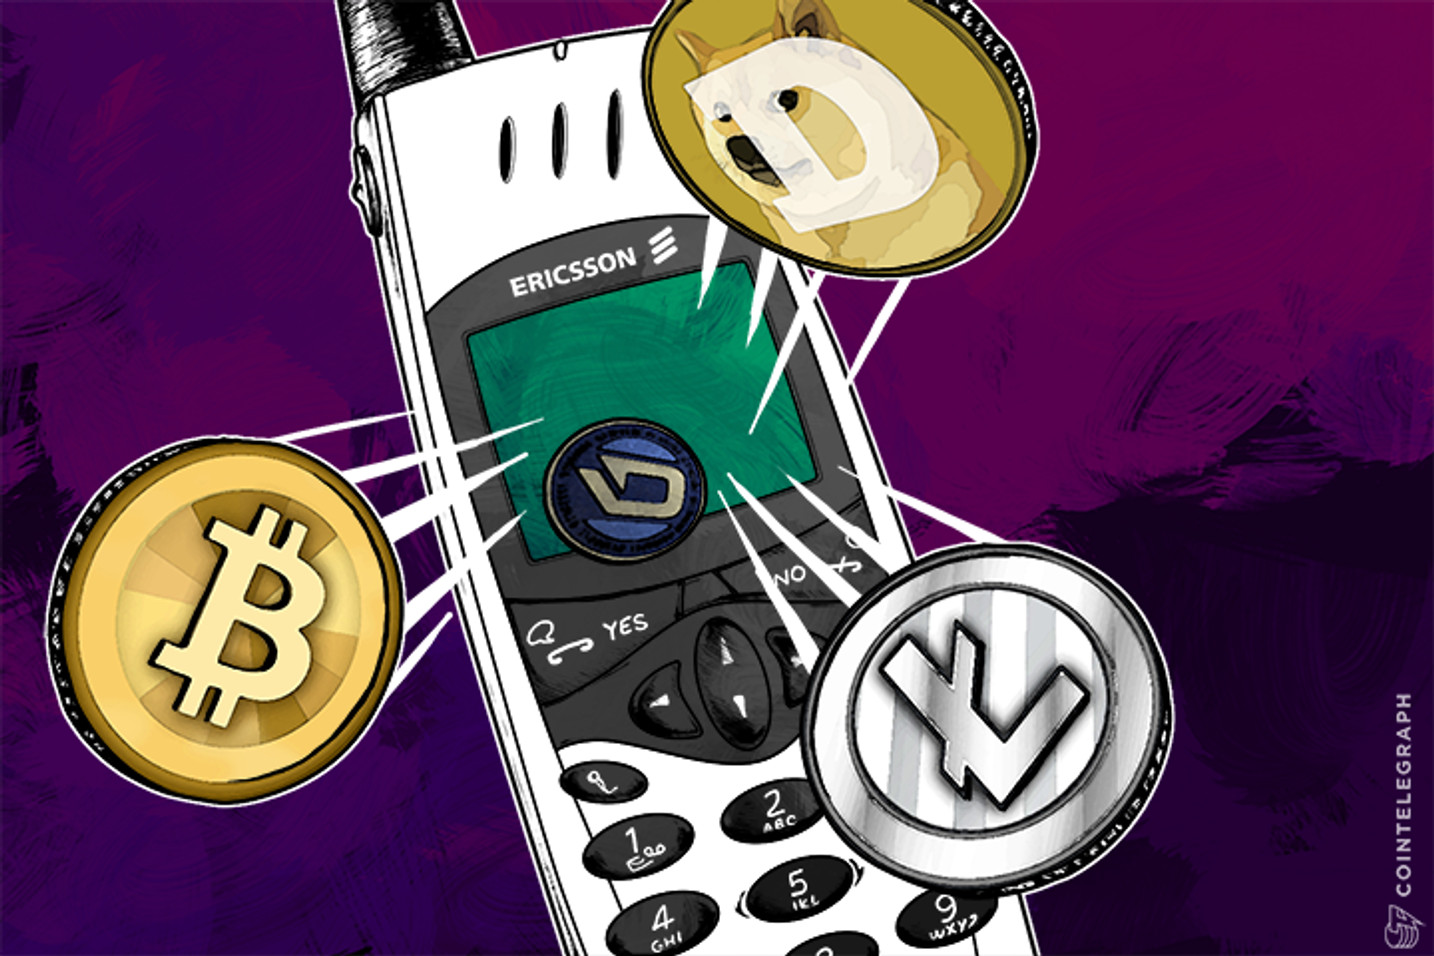 Ericsson Report: With Cryptocurrency 'Even a Mobile Device is Enough' to Provide Same Services as Lloyds, HSBC or BoA